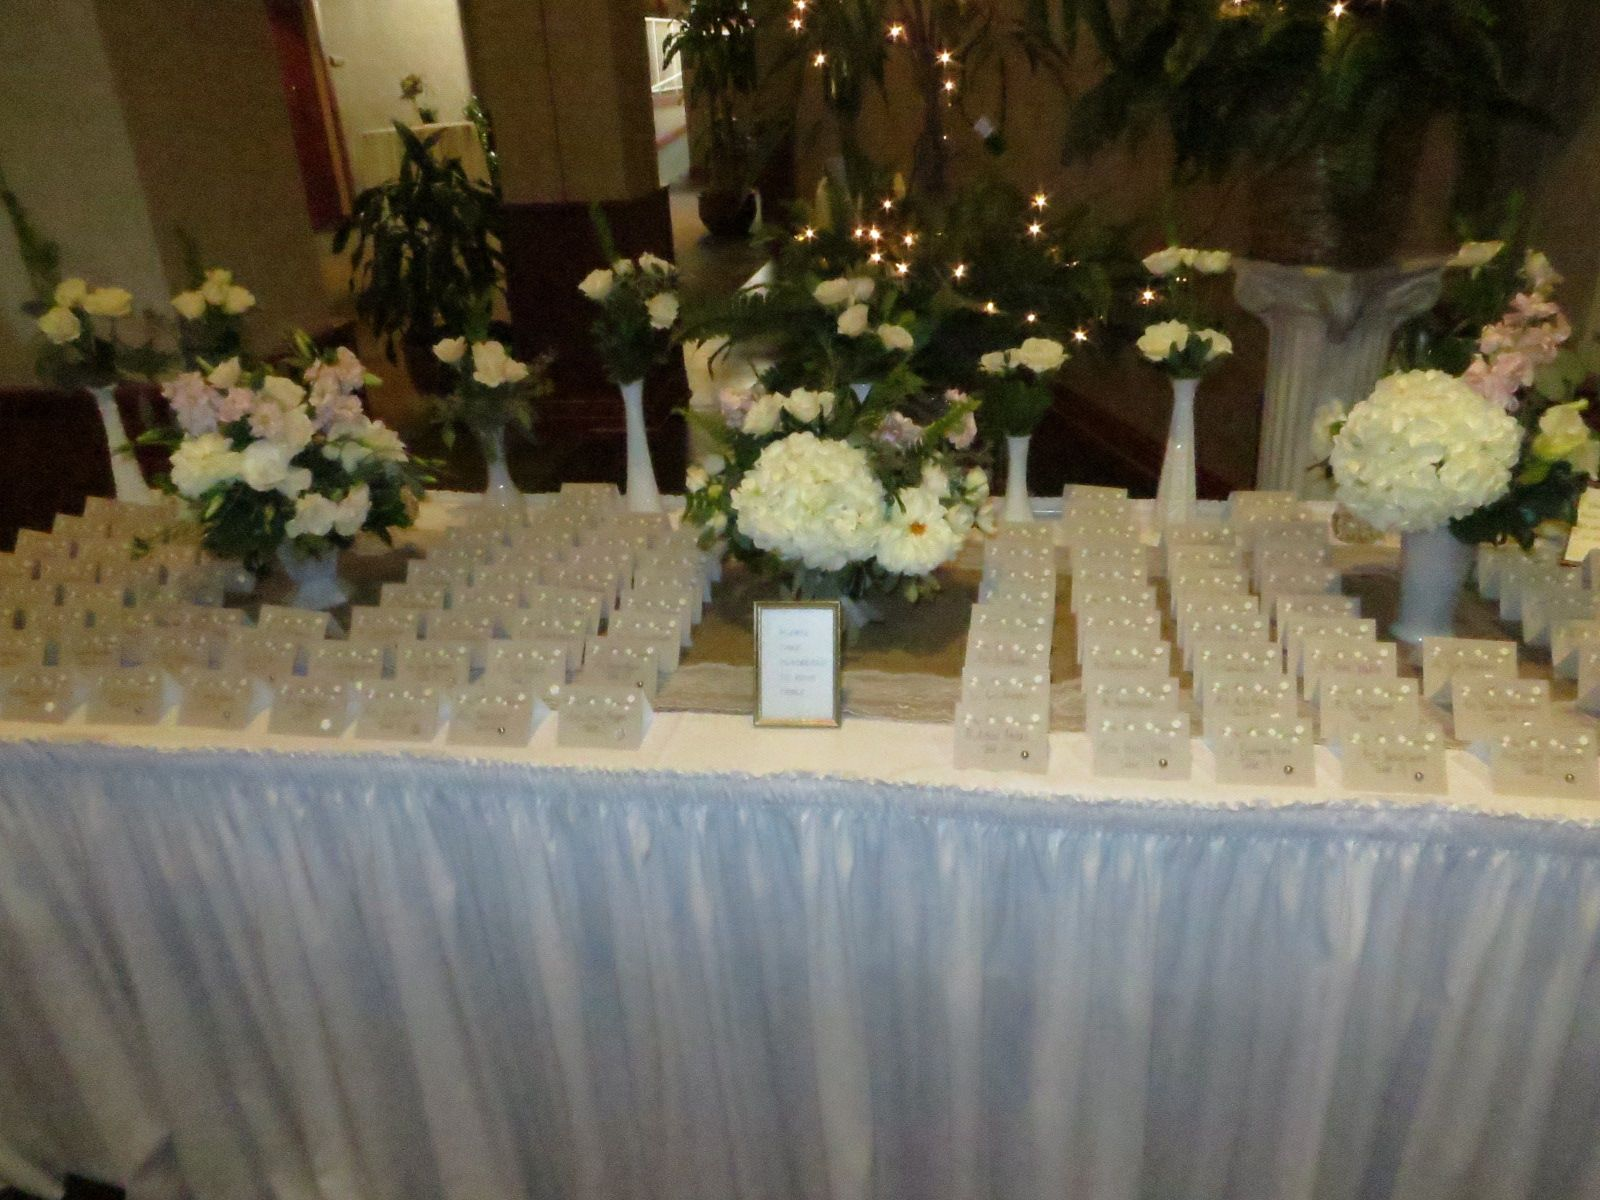 Table Seating Cards At Jordan And Nicks Wedding Reception Lake Shore Country Club In Erie